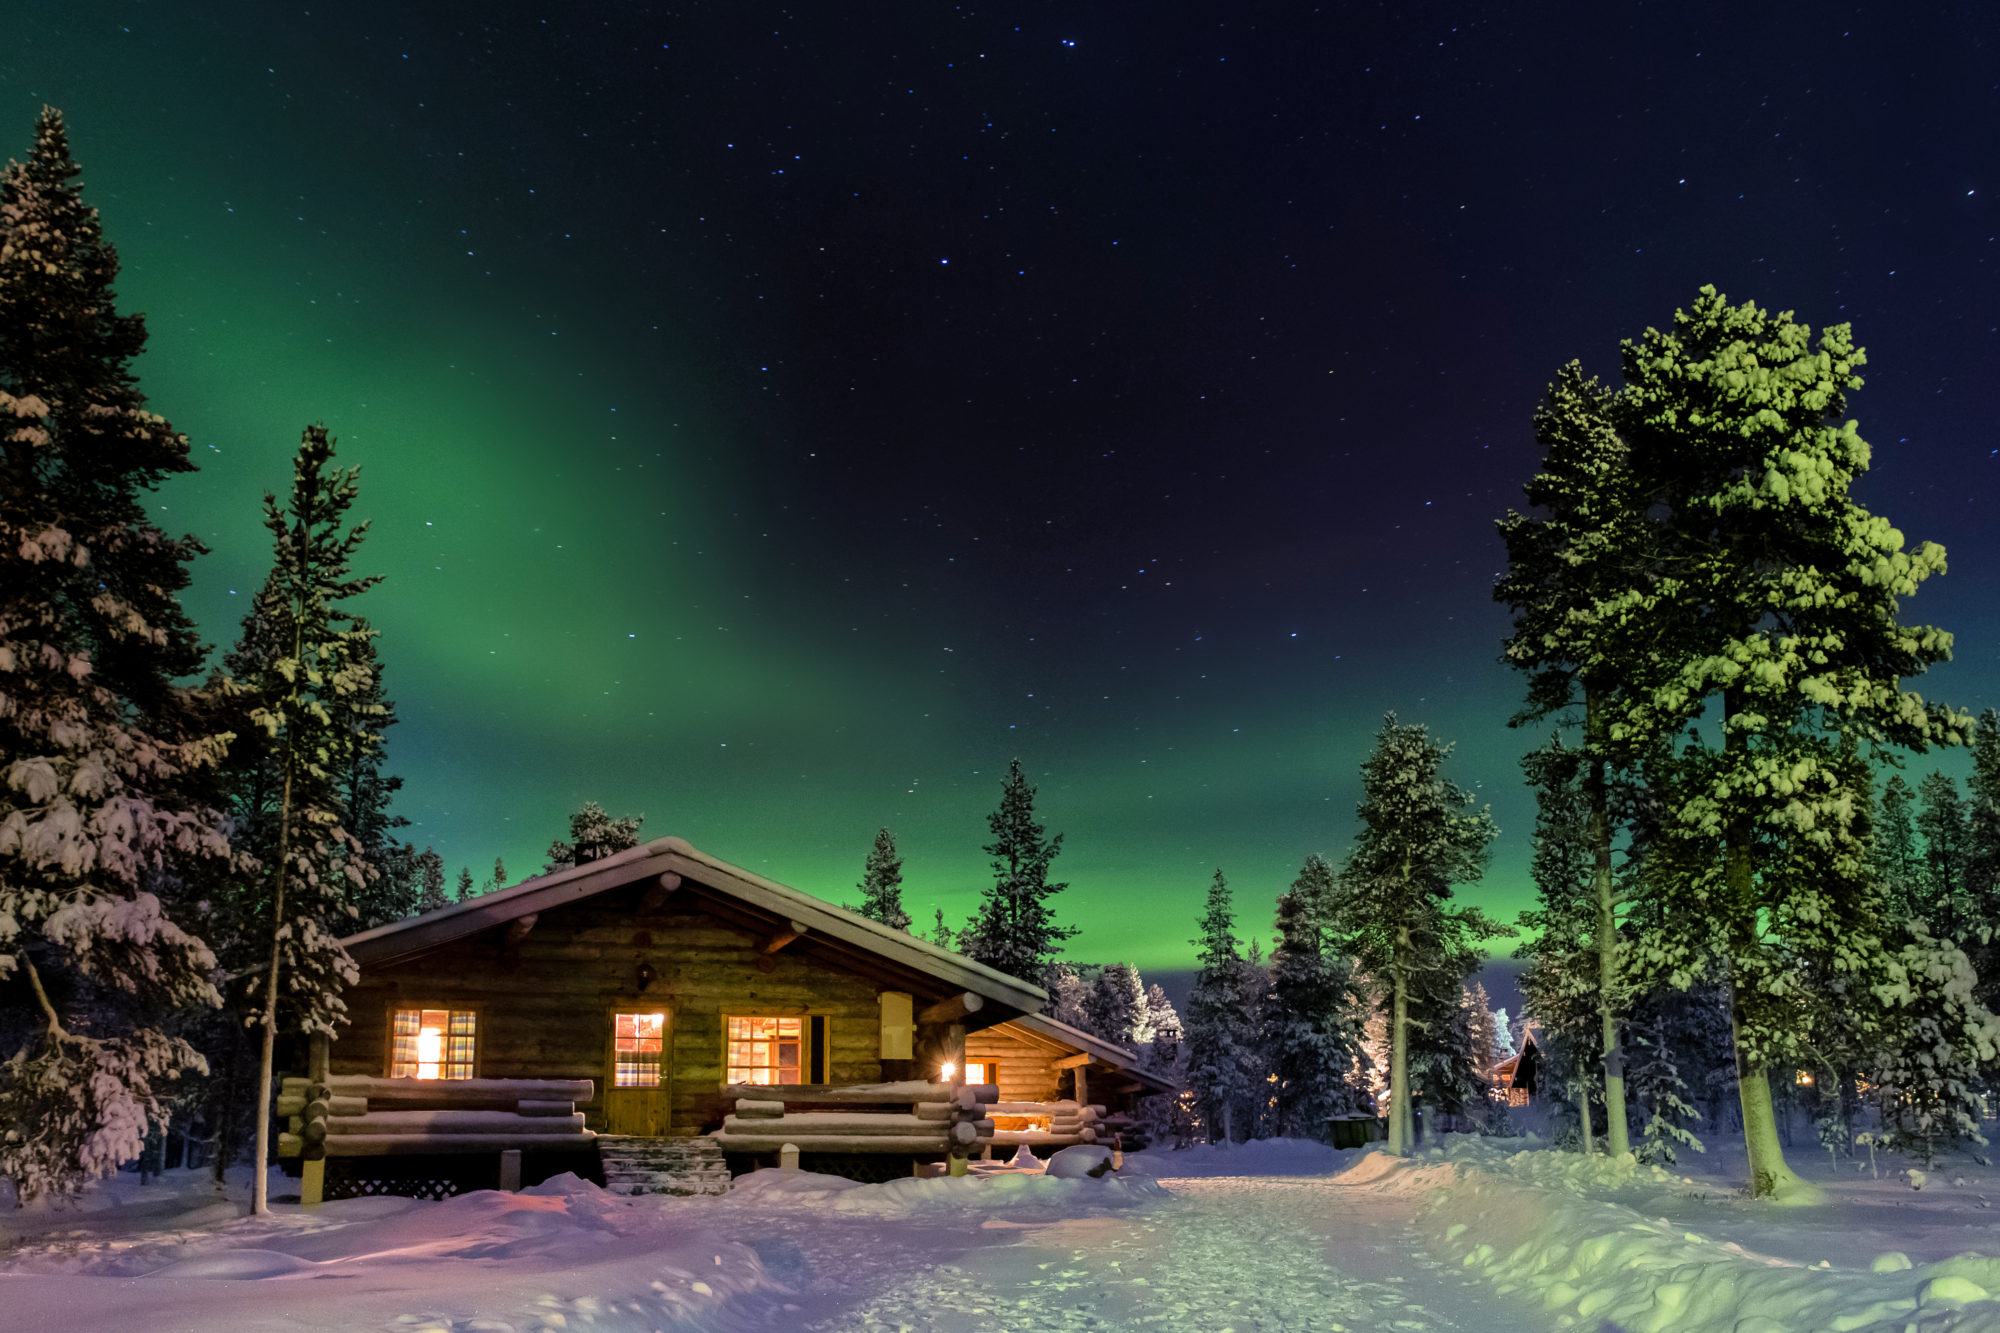 Aurora Borealis above cottages in Lapland.